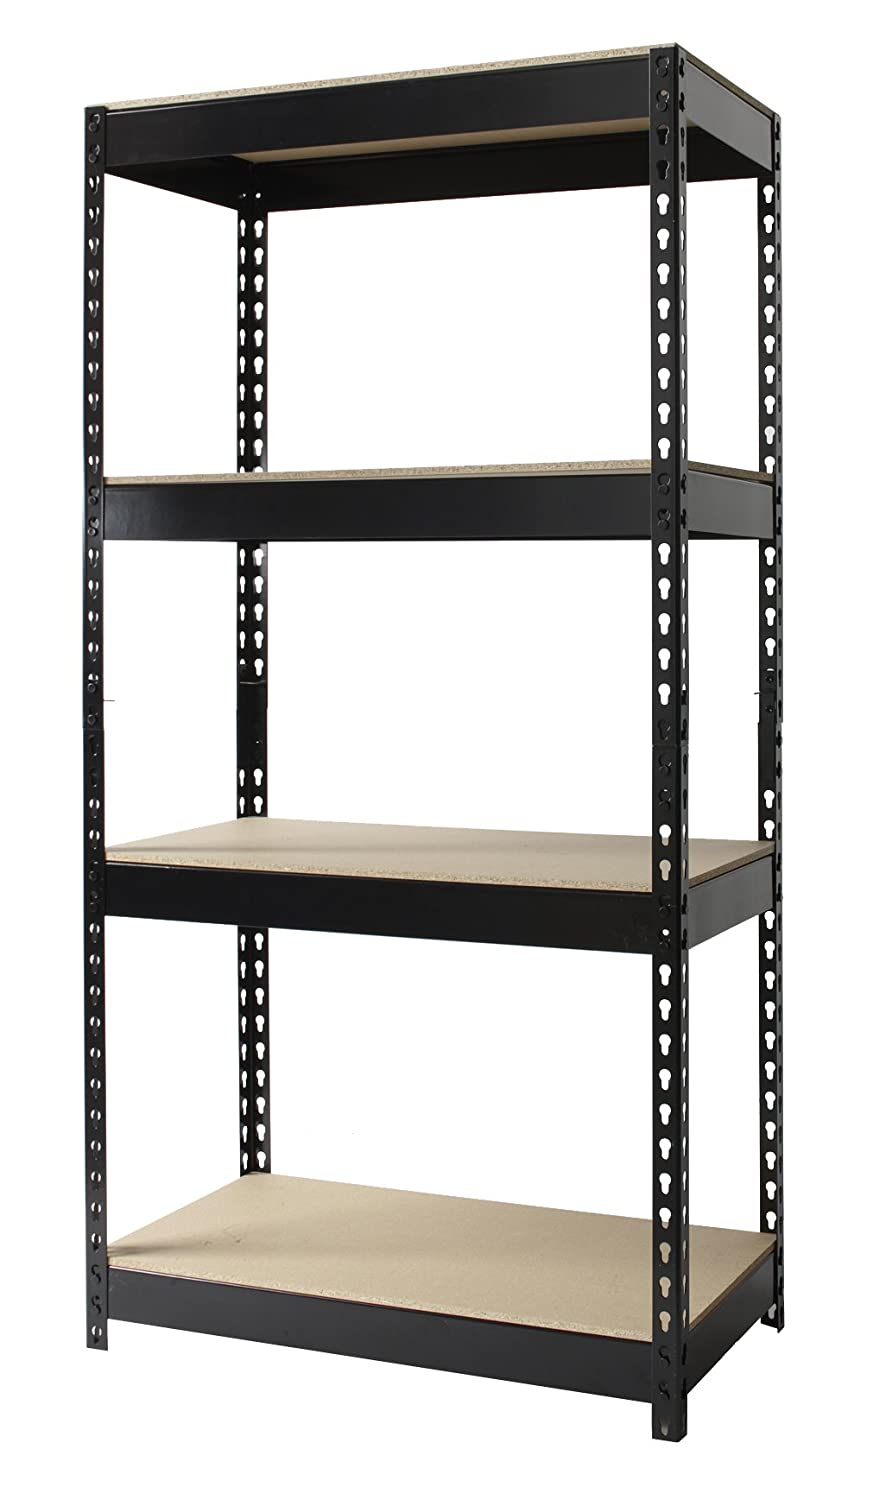 amazoncom hirsh industries steel 4shelf unit 30 by 16 by 60inch black kitchen u0026 dining